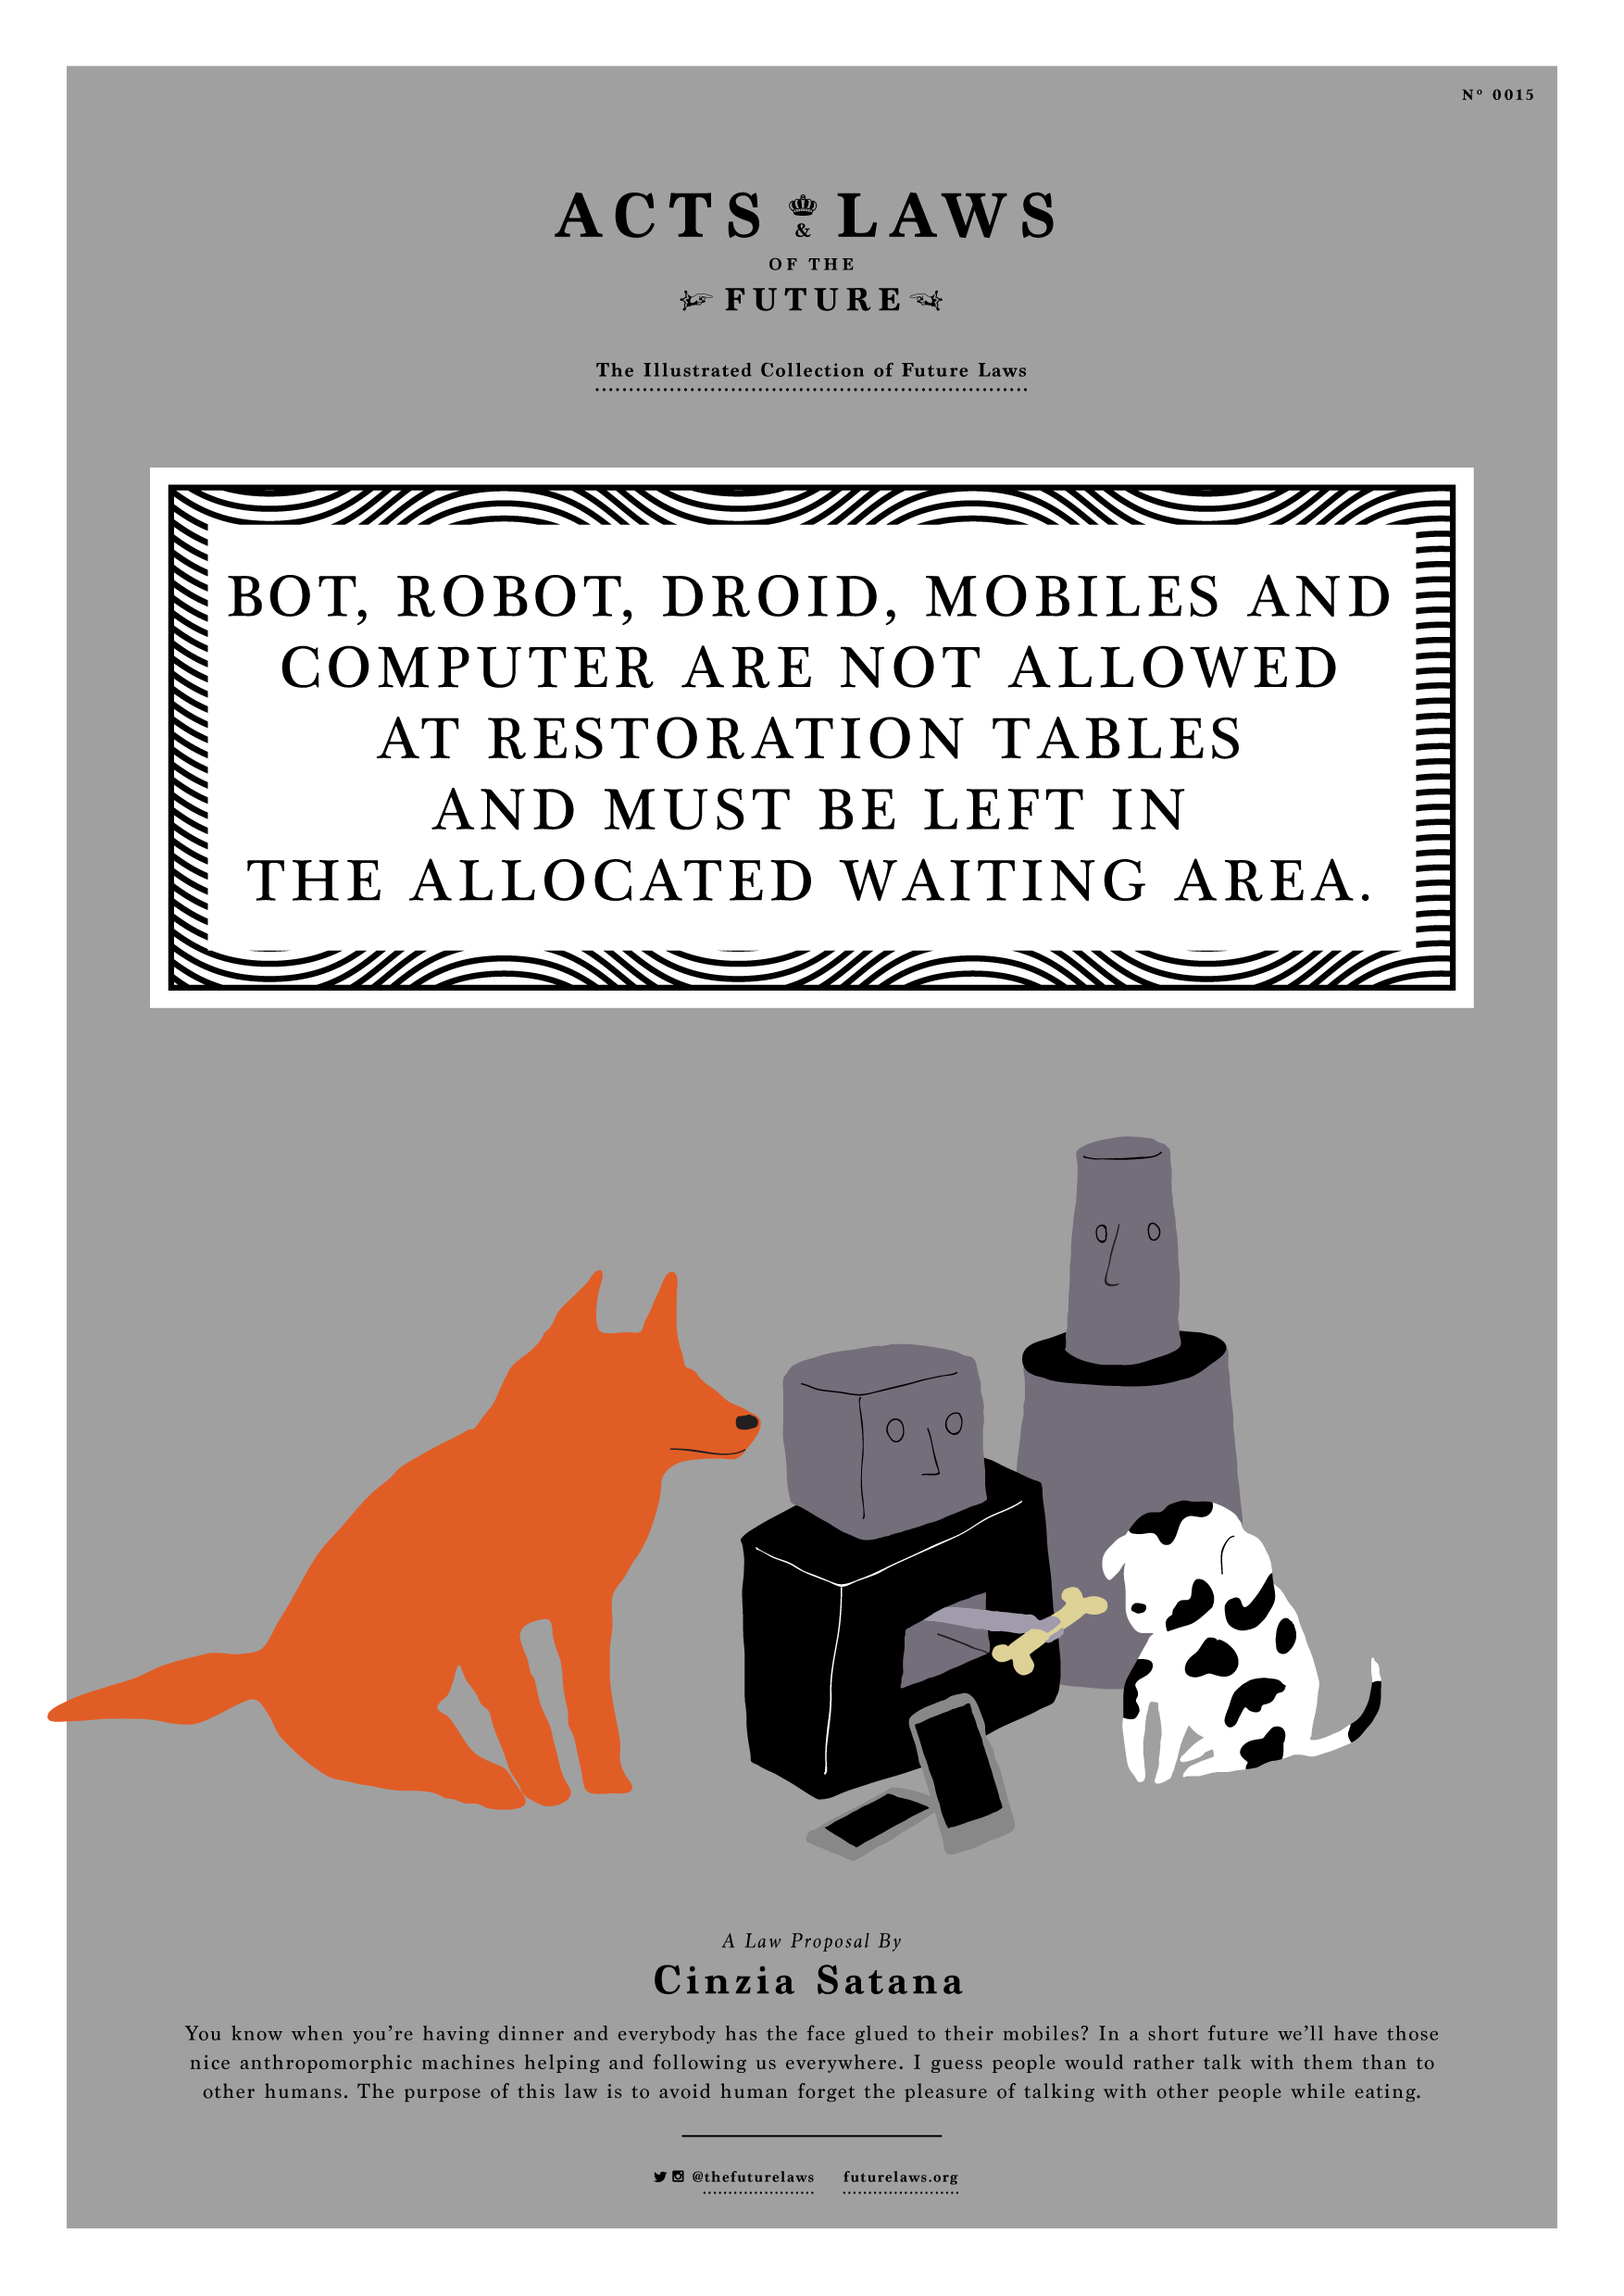 Bot, robot, droid, mobiles and computer are not allowed at restoration tables and must be left in the allocated waiting area.